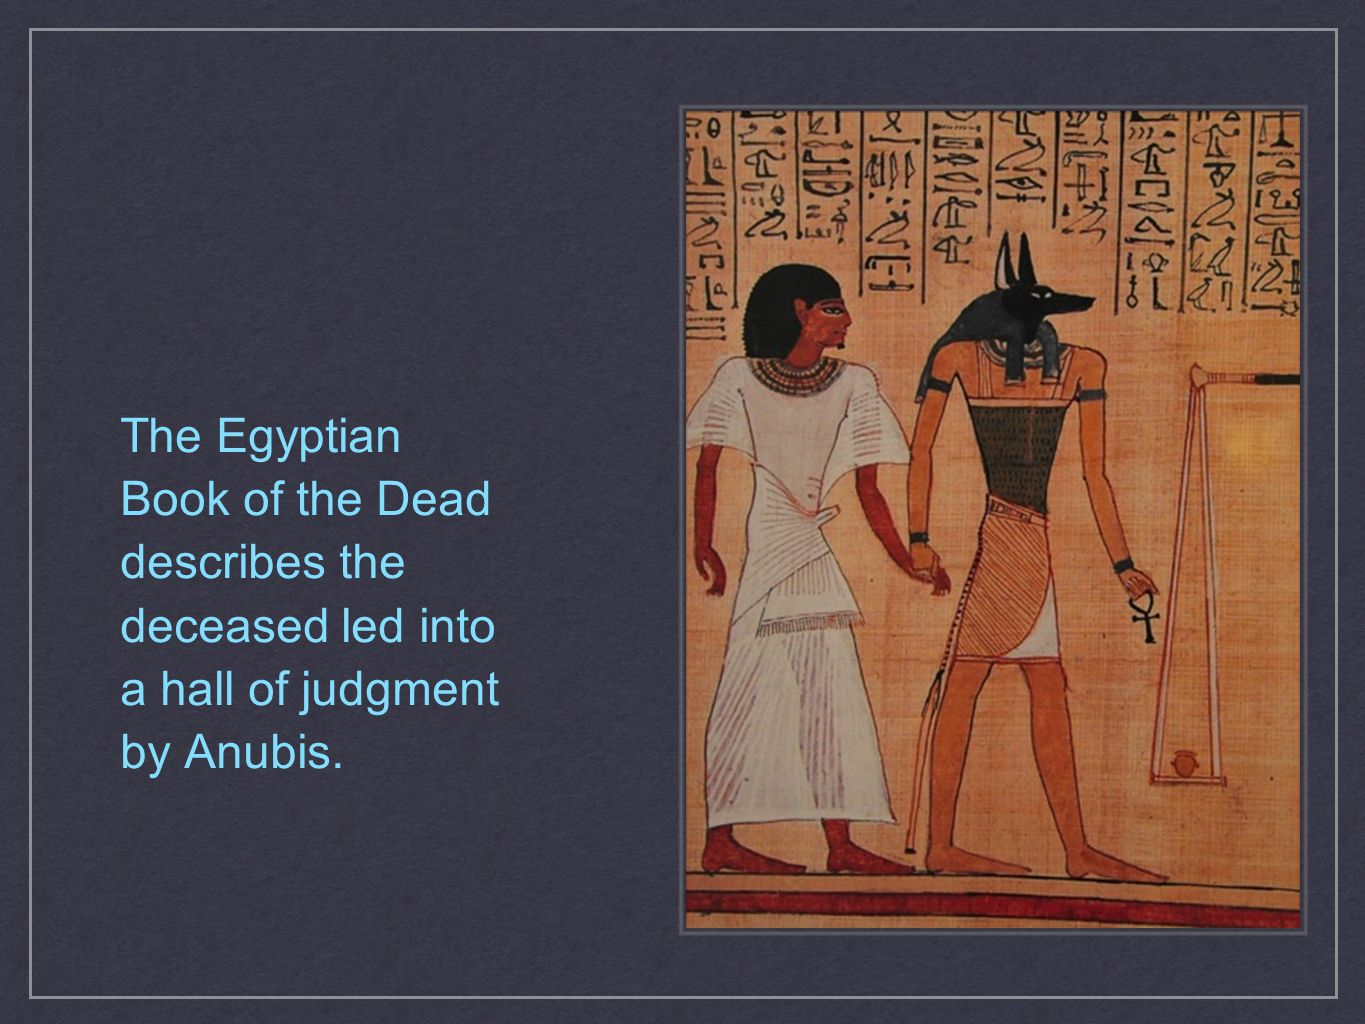 The Egyptian Book of the Dead describes the deceased led into a hall of judgment by Anubis.